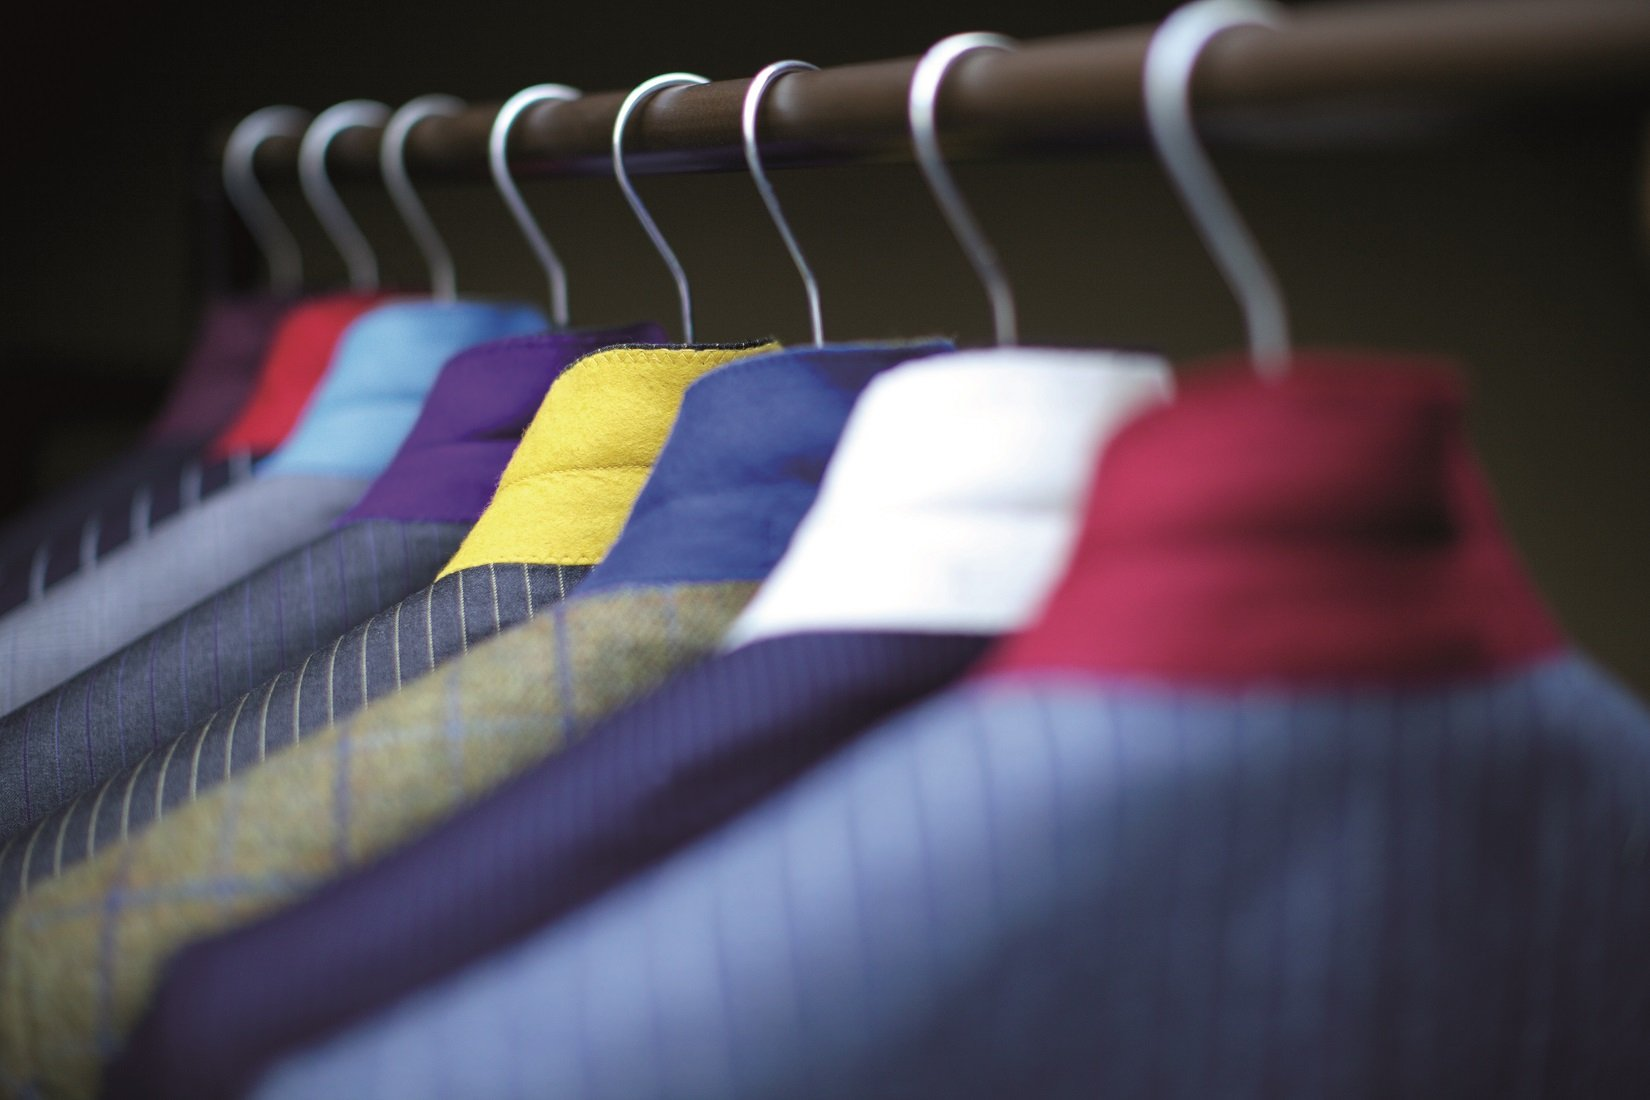 Made to measure suit - select from many detail options